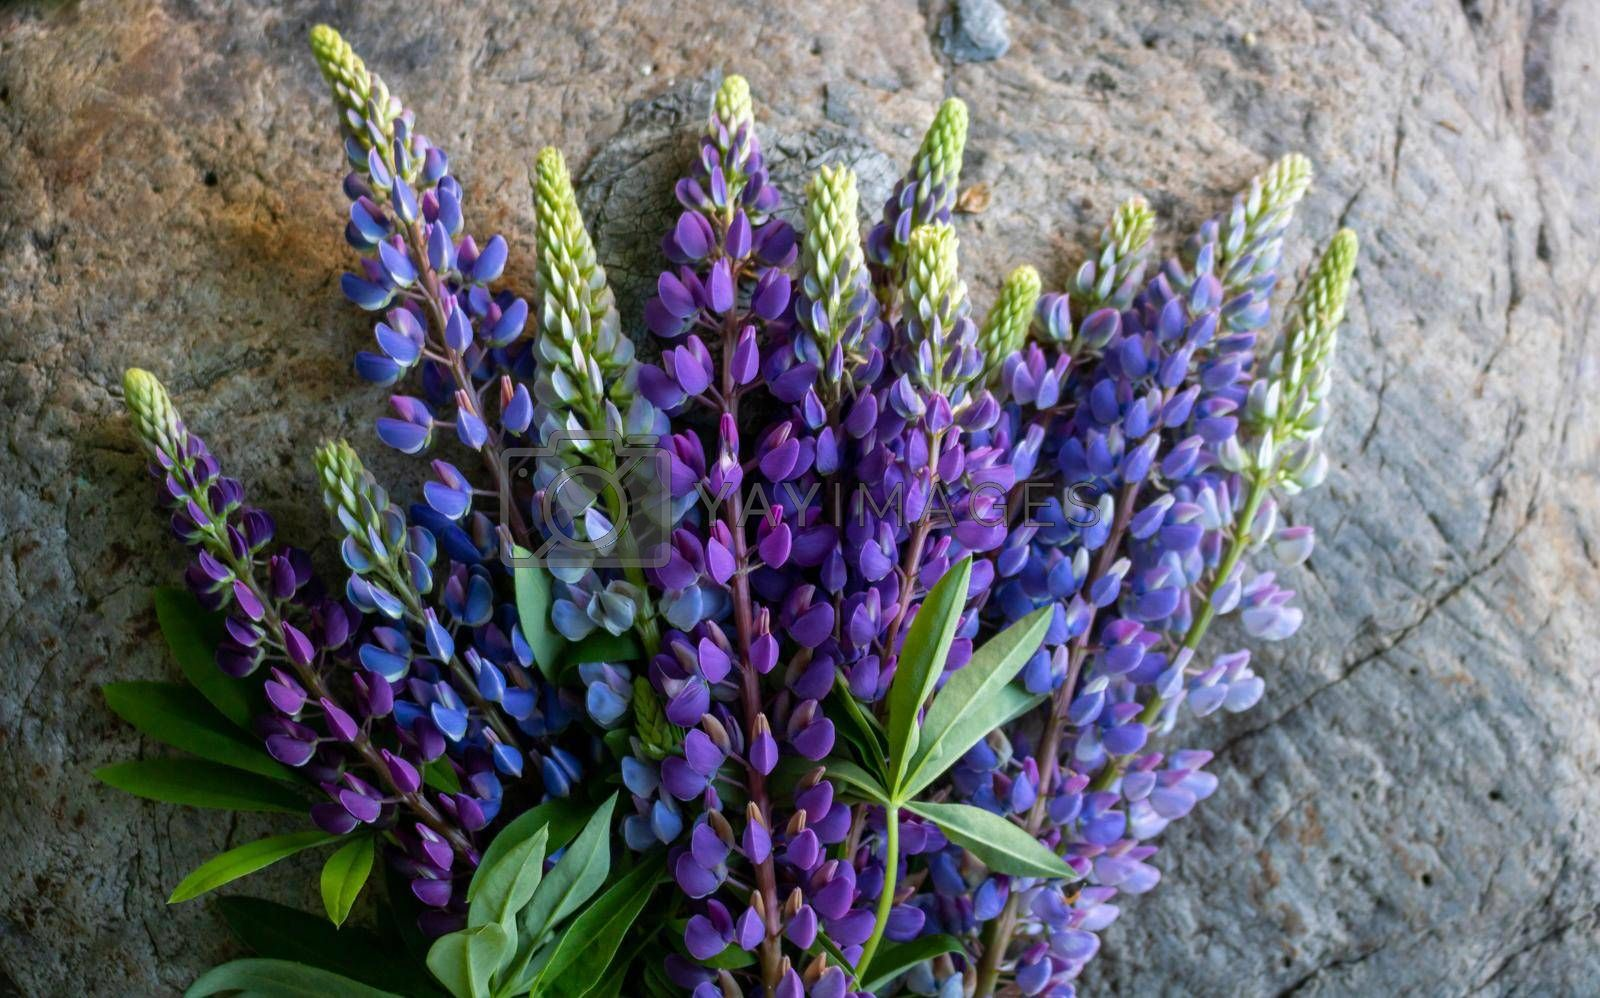 A bouquet of lupines isolated against a gray stone background.